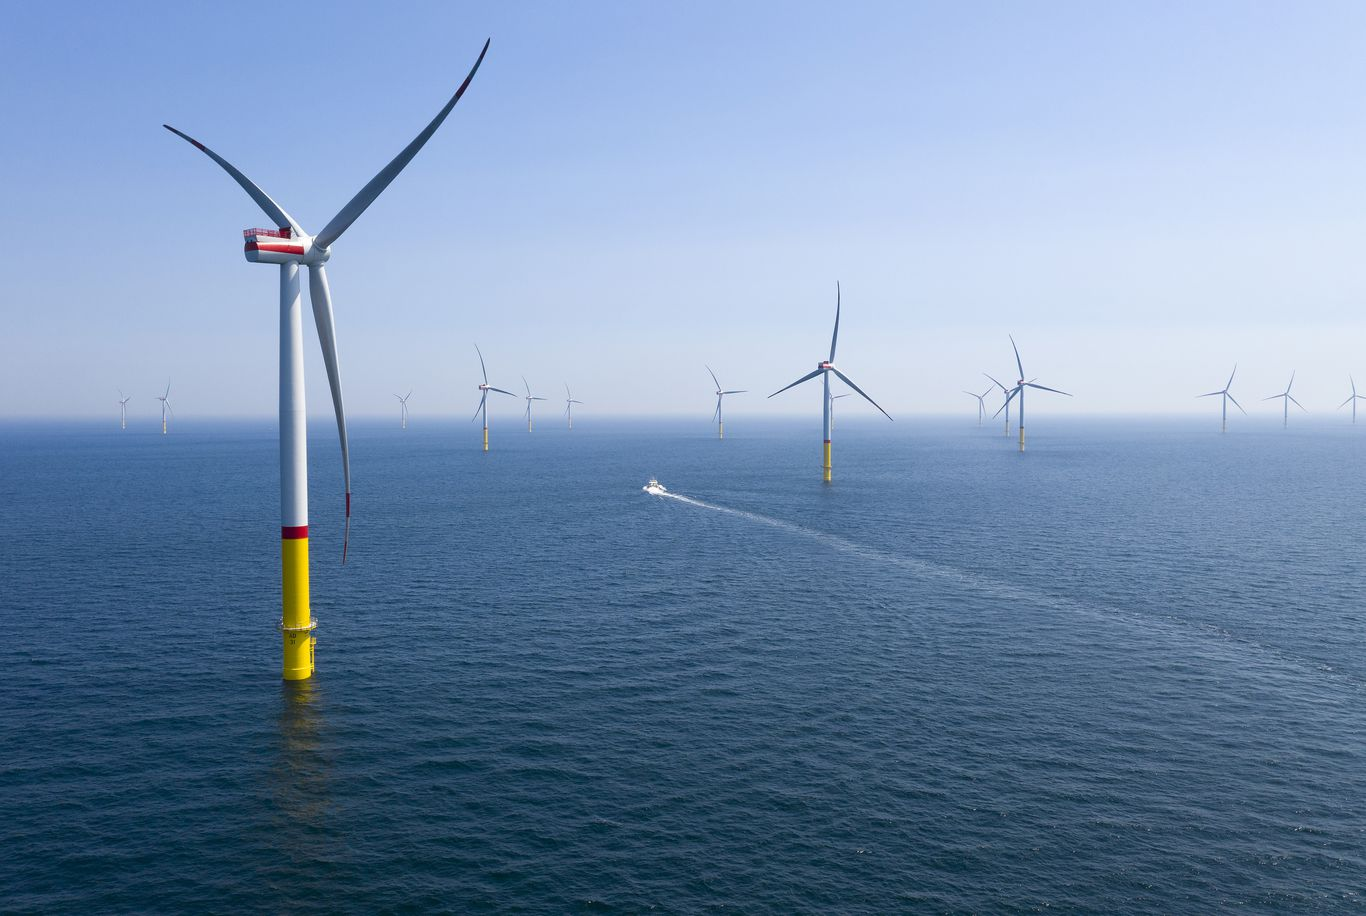 Oil giant Total's new push into offshore wind